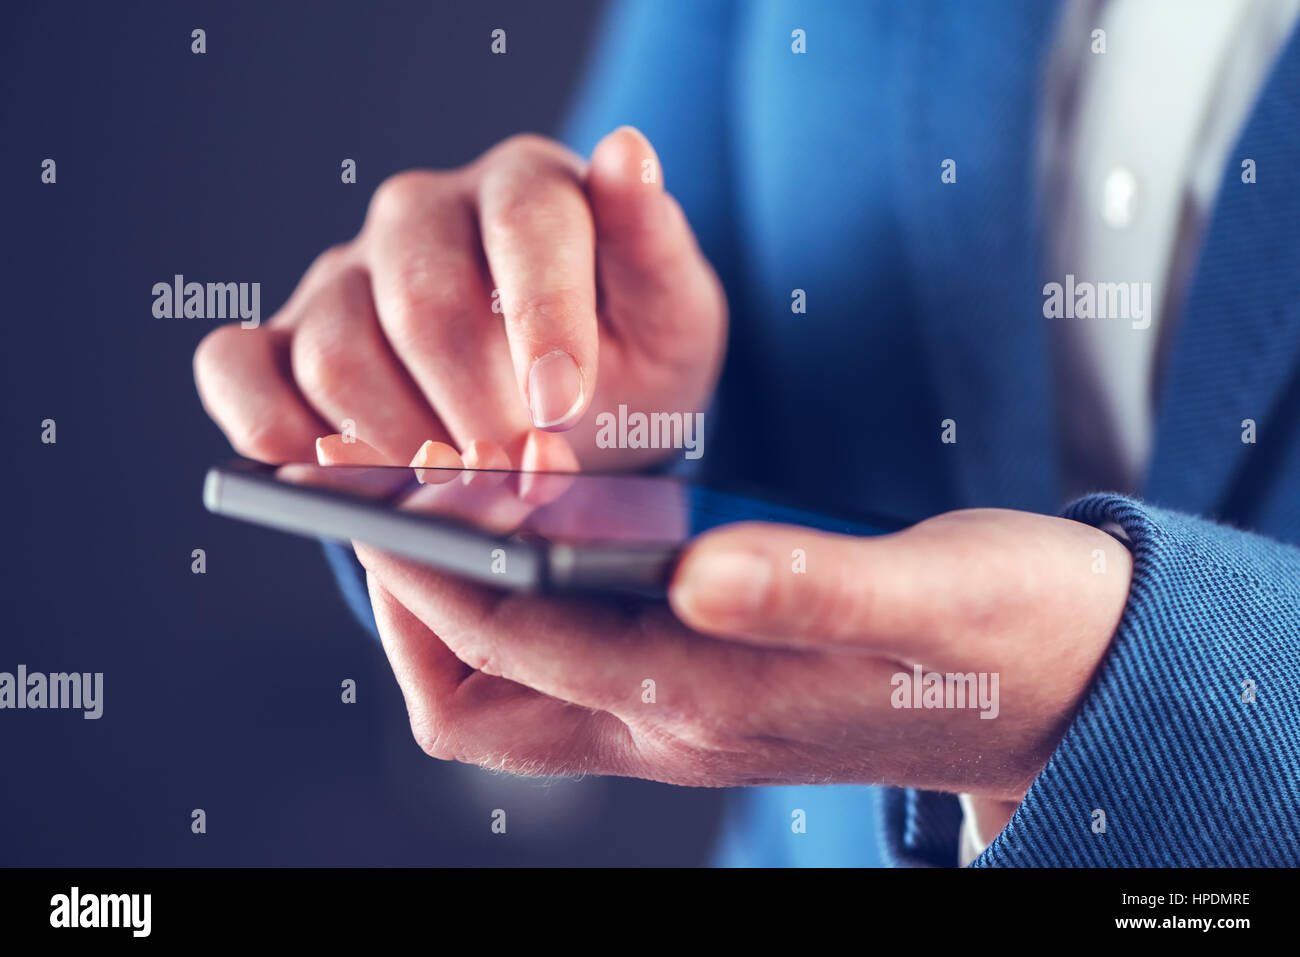 Businesswoman using mobile phone and sending SMS message - Stock Image